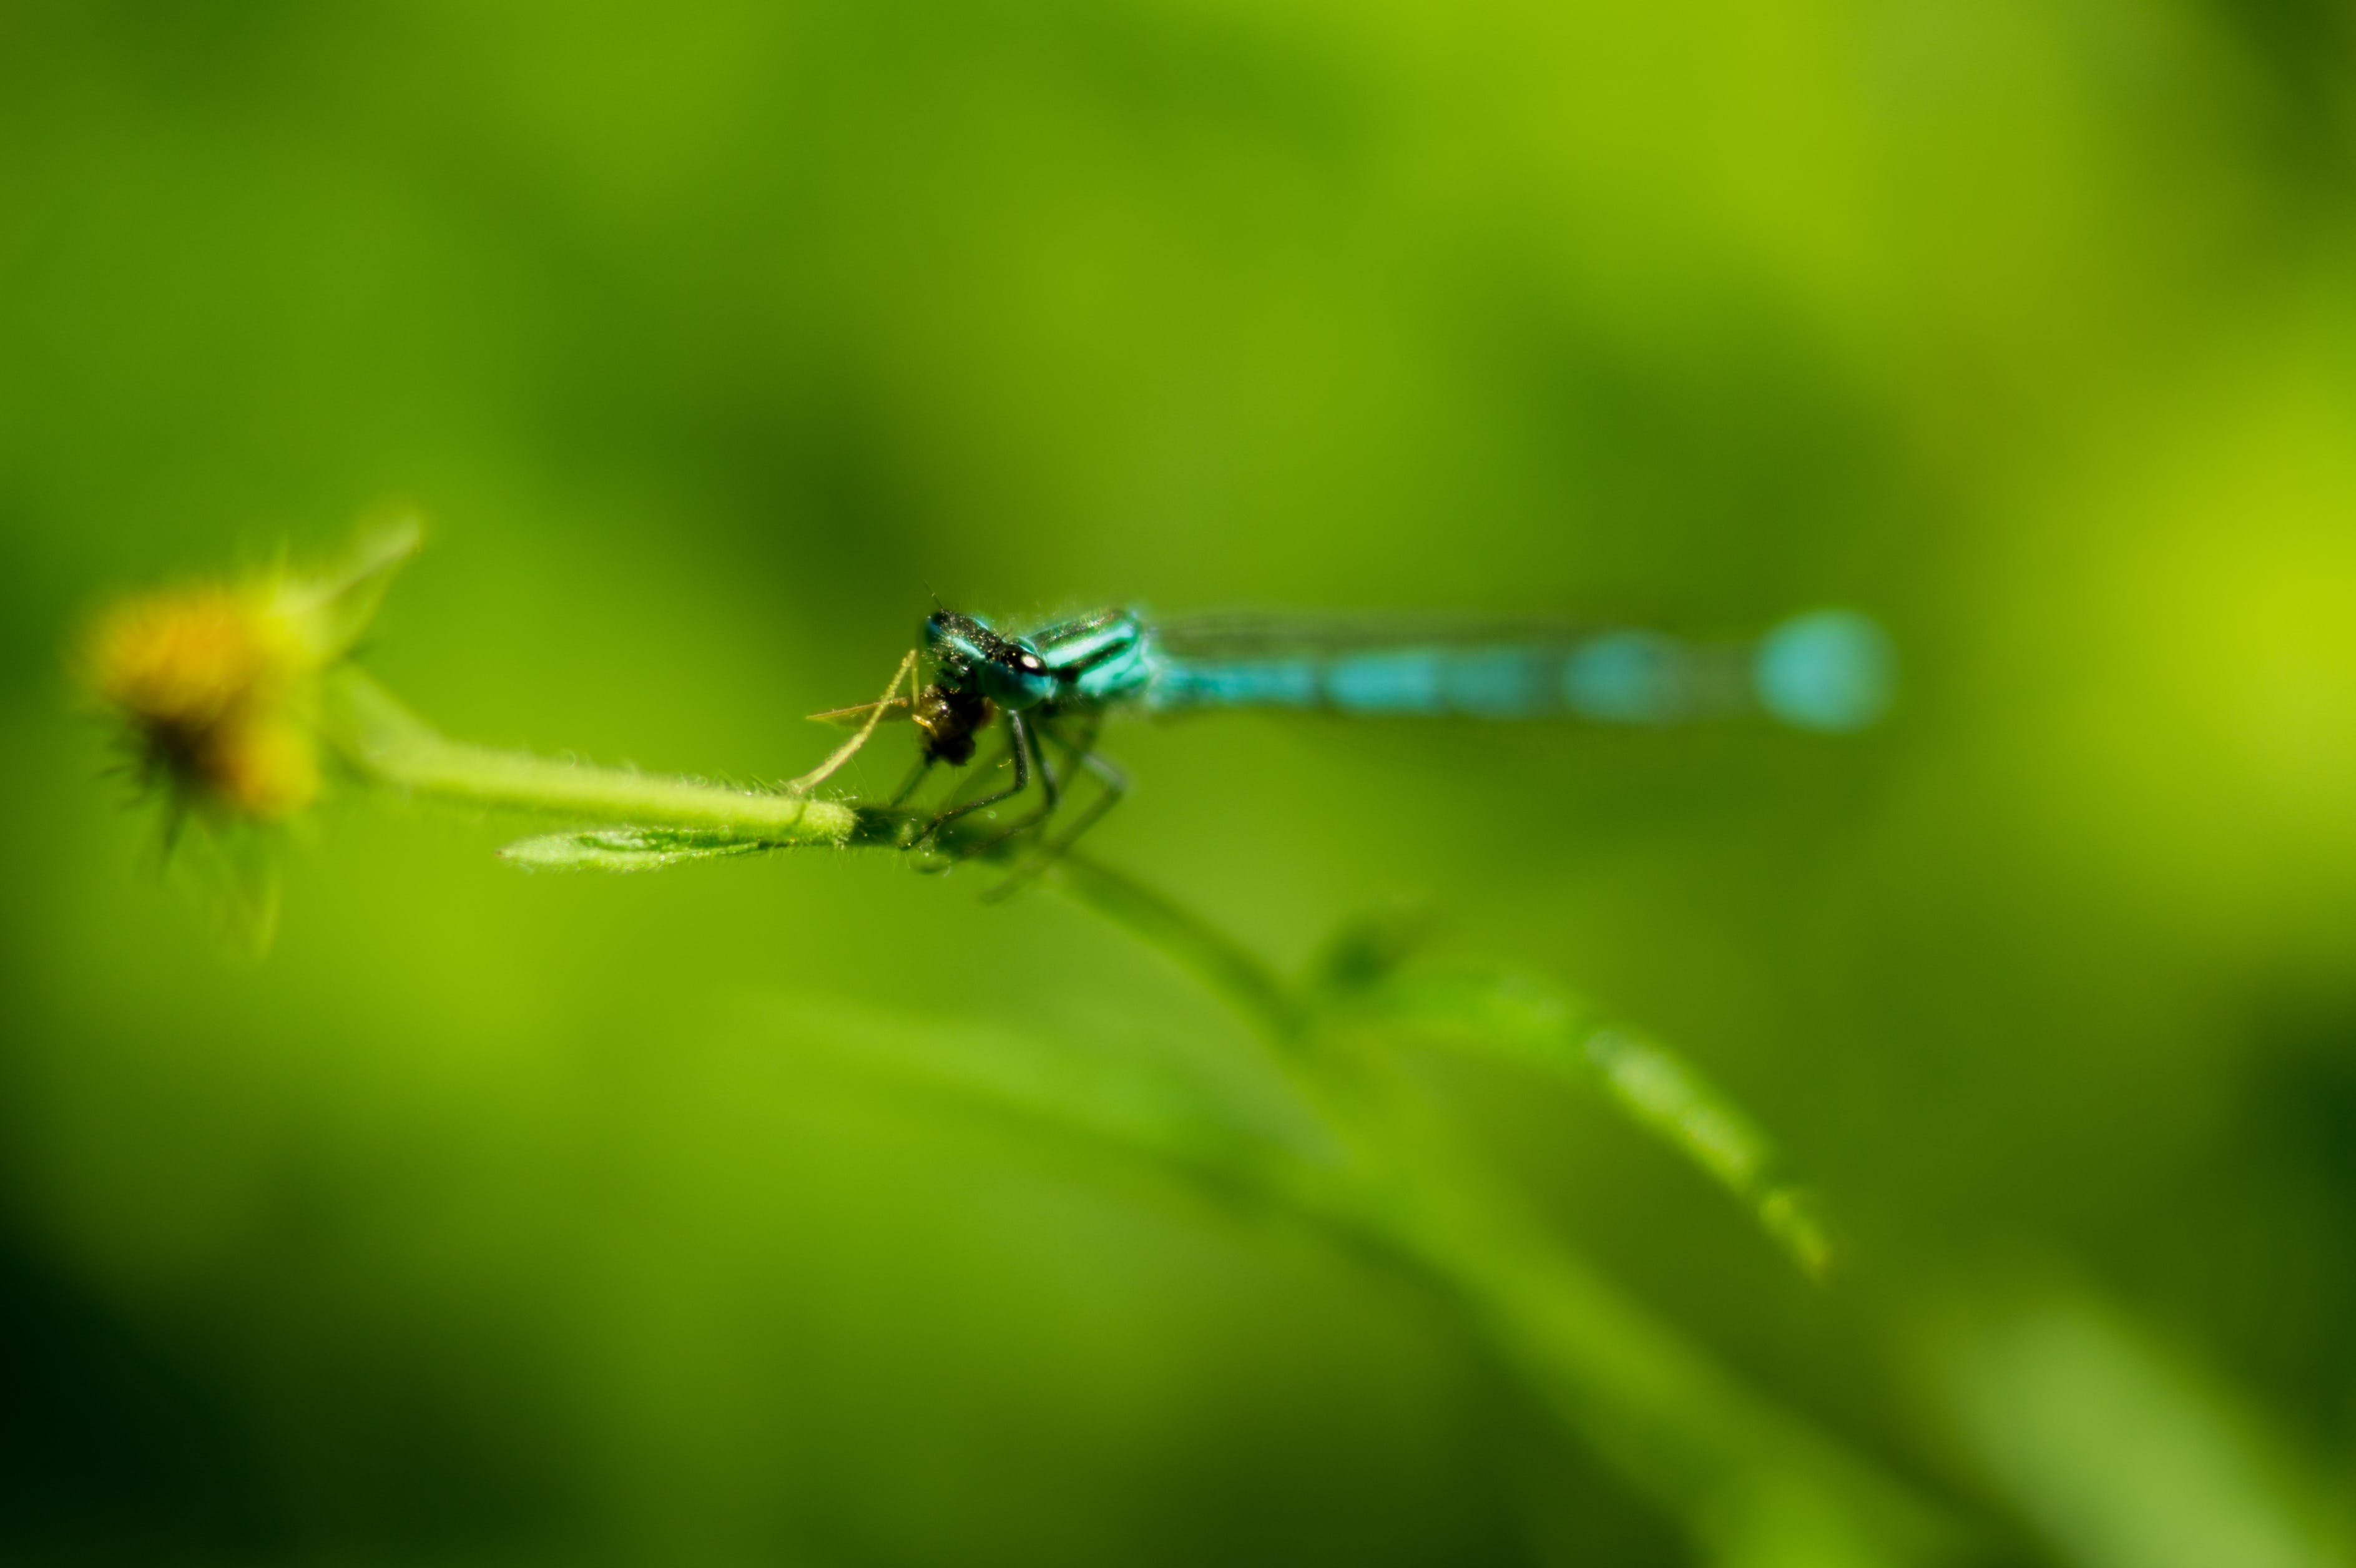 Selective Focus Photography of Blue Damselfly on Plant Stem